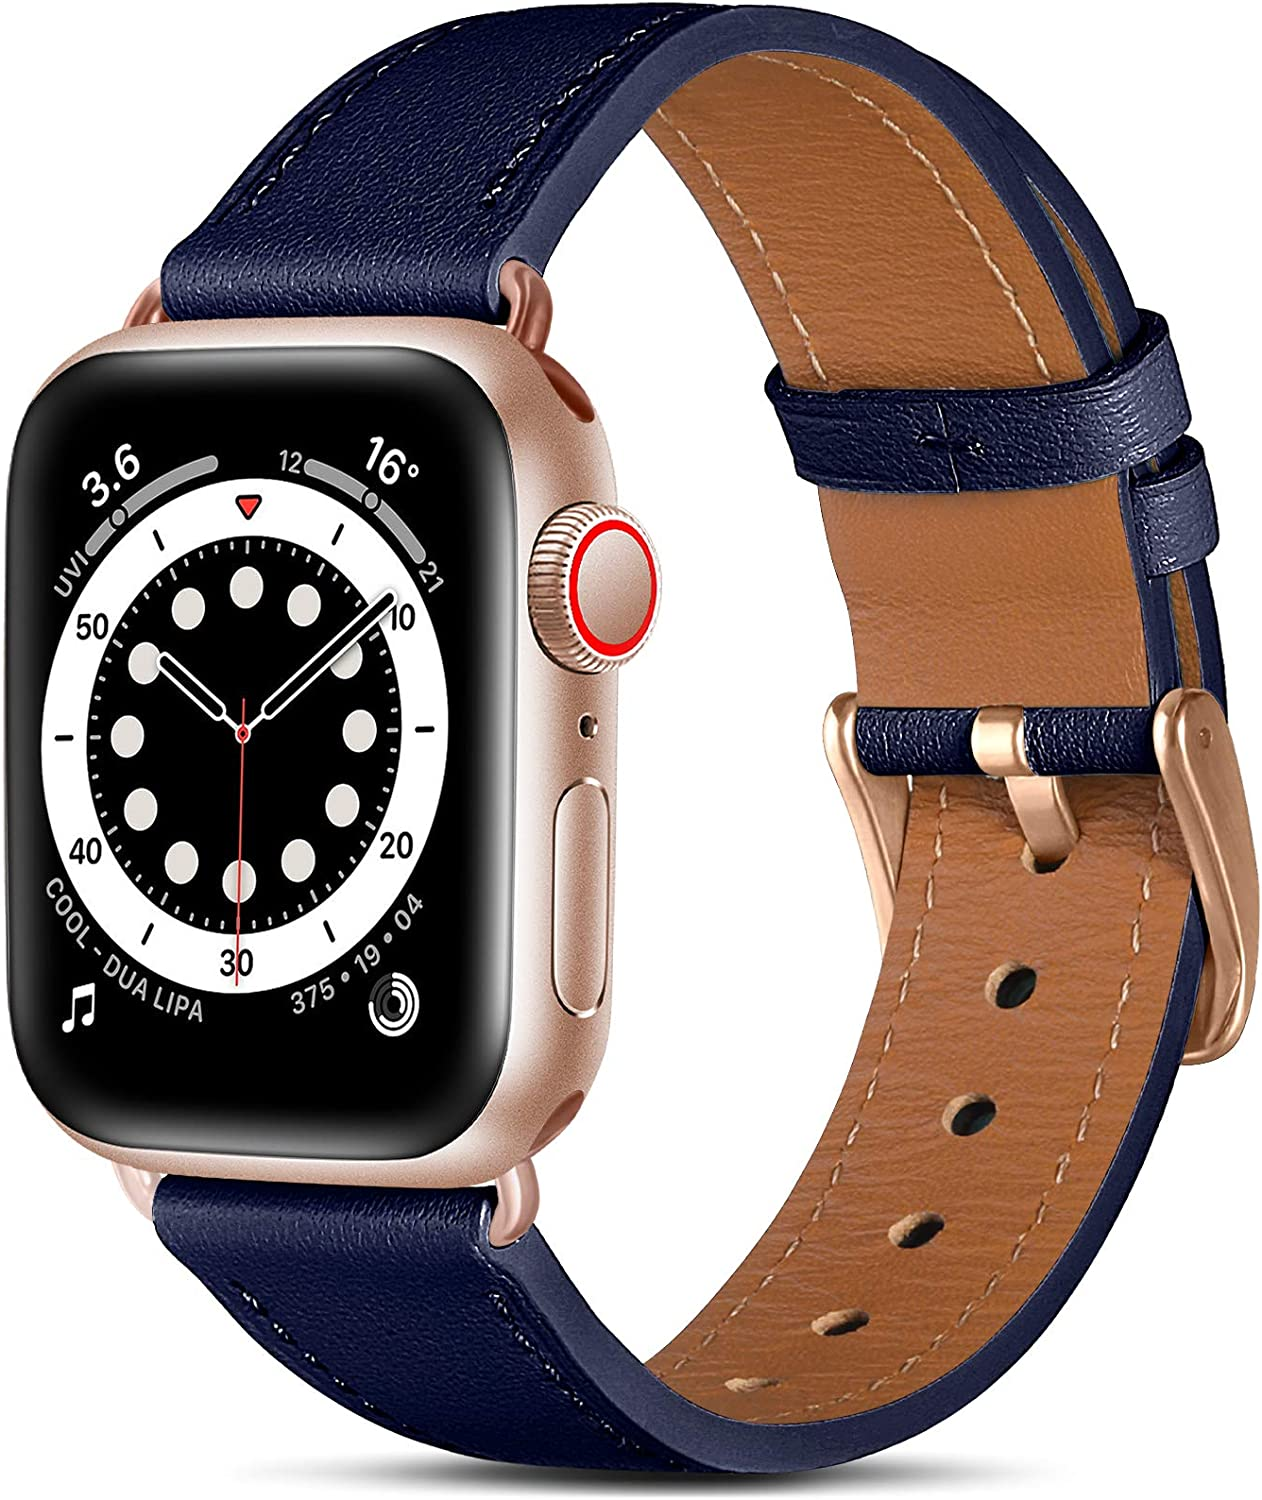 Easuny Leather Band Compatible with Apple Watch Bands SE 40mm 38mm iWatch Series 6 5 4 3 2 1, Classical Elegent Genuine Leather Strap Wristband Replacement Accessories for Women Men,Navy Blue